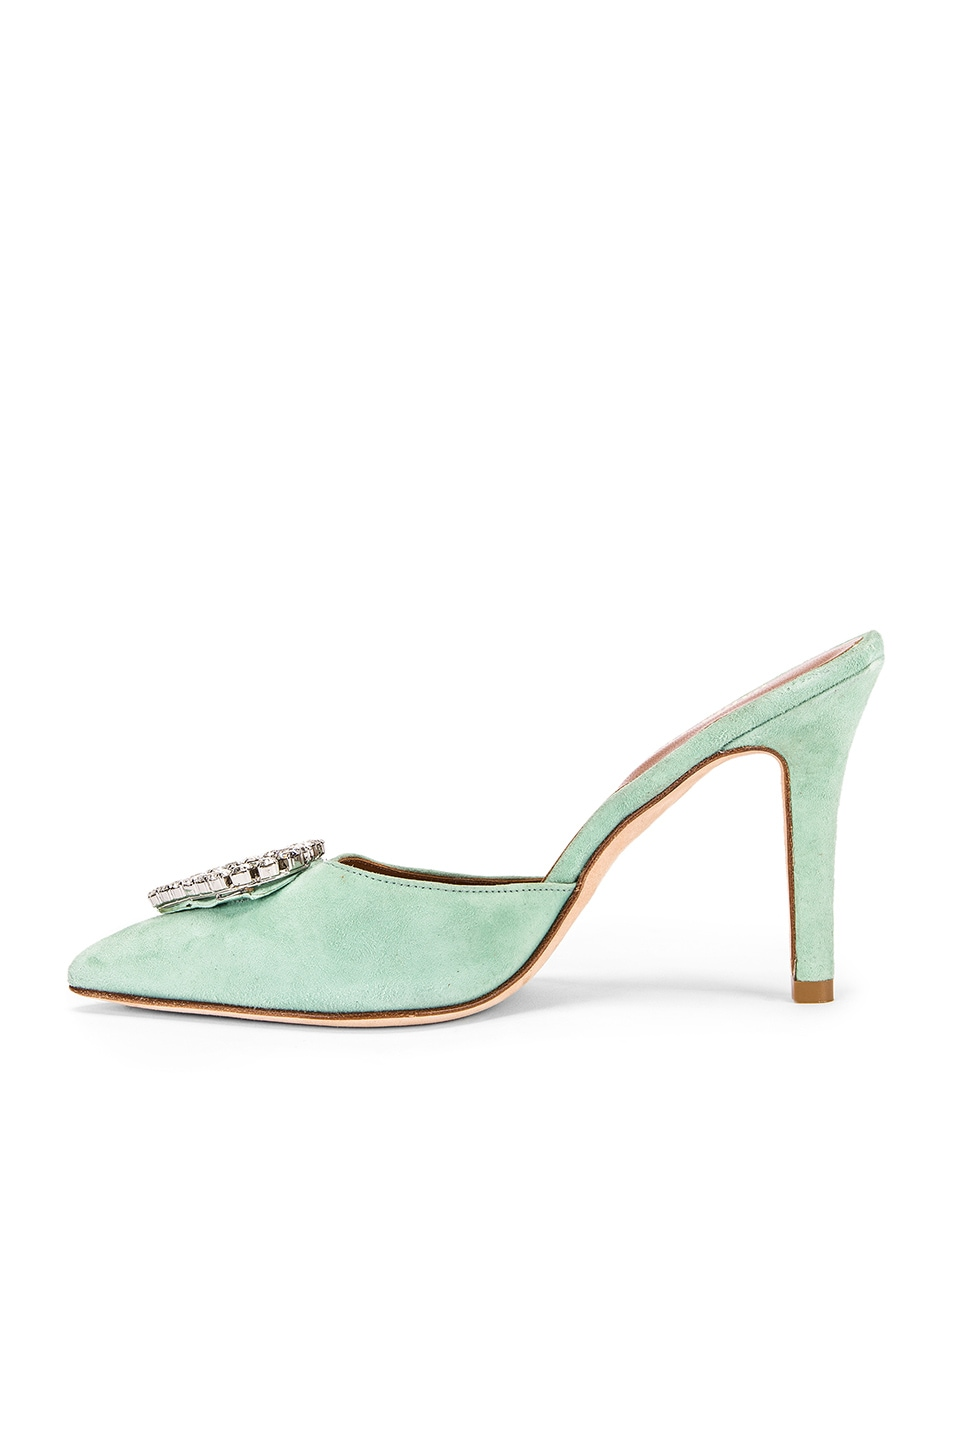 Image 5 of Paris Texas Crystal and Suede Stiletto Mule in Mint